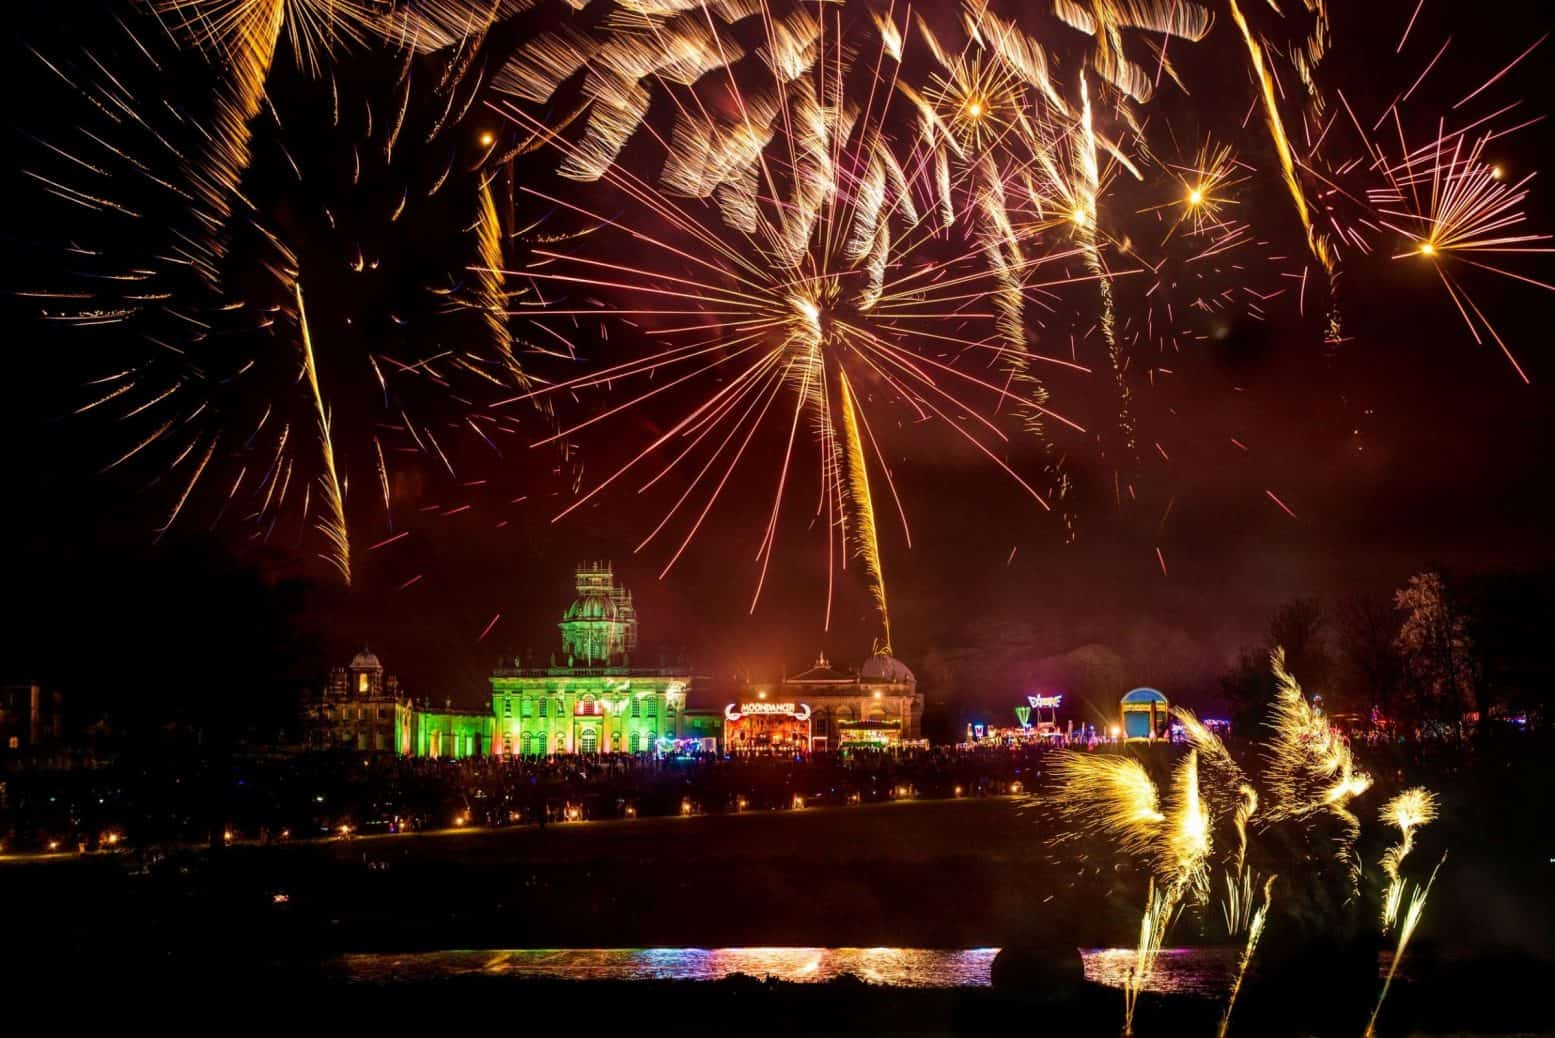 Fireworks Display and Bonfire Night in and Near York 2019